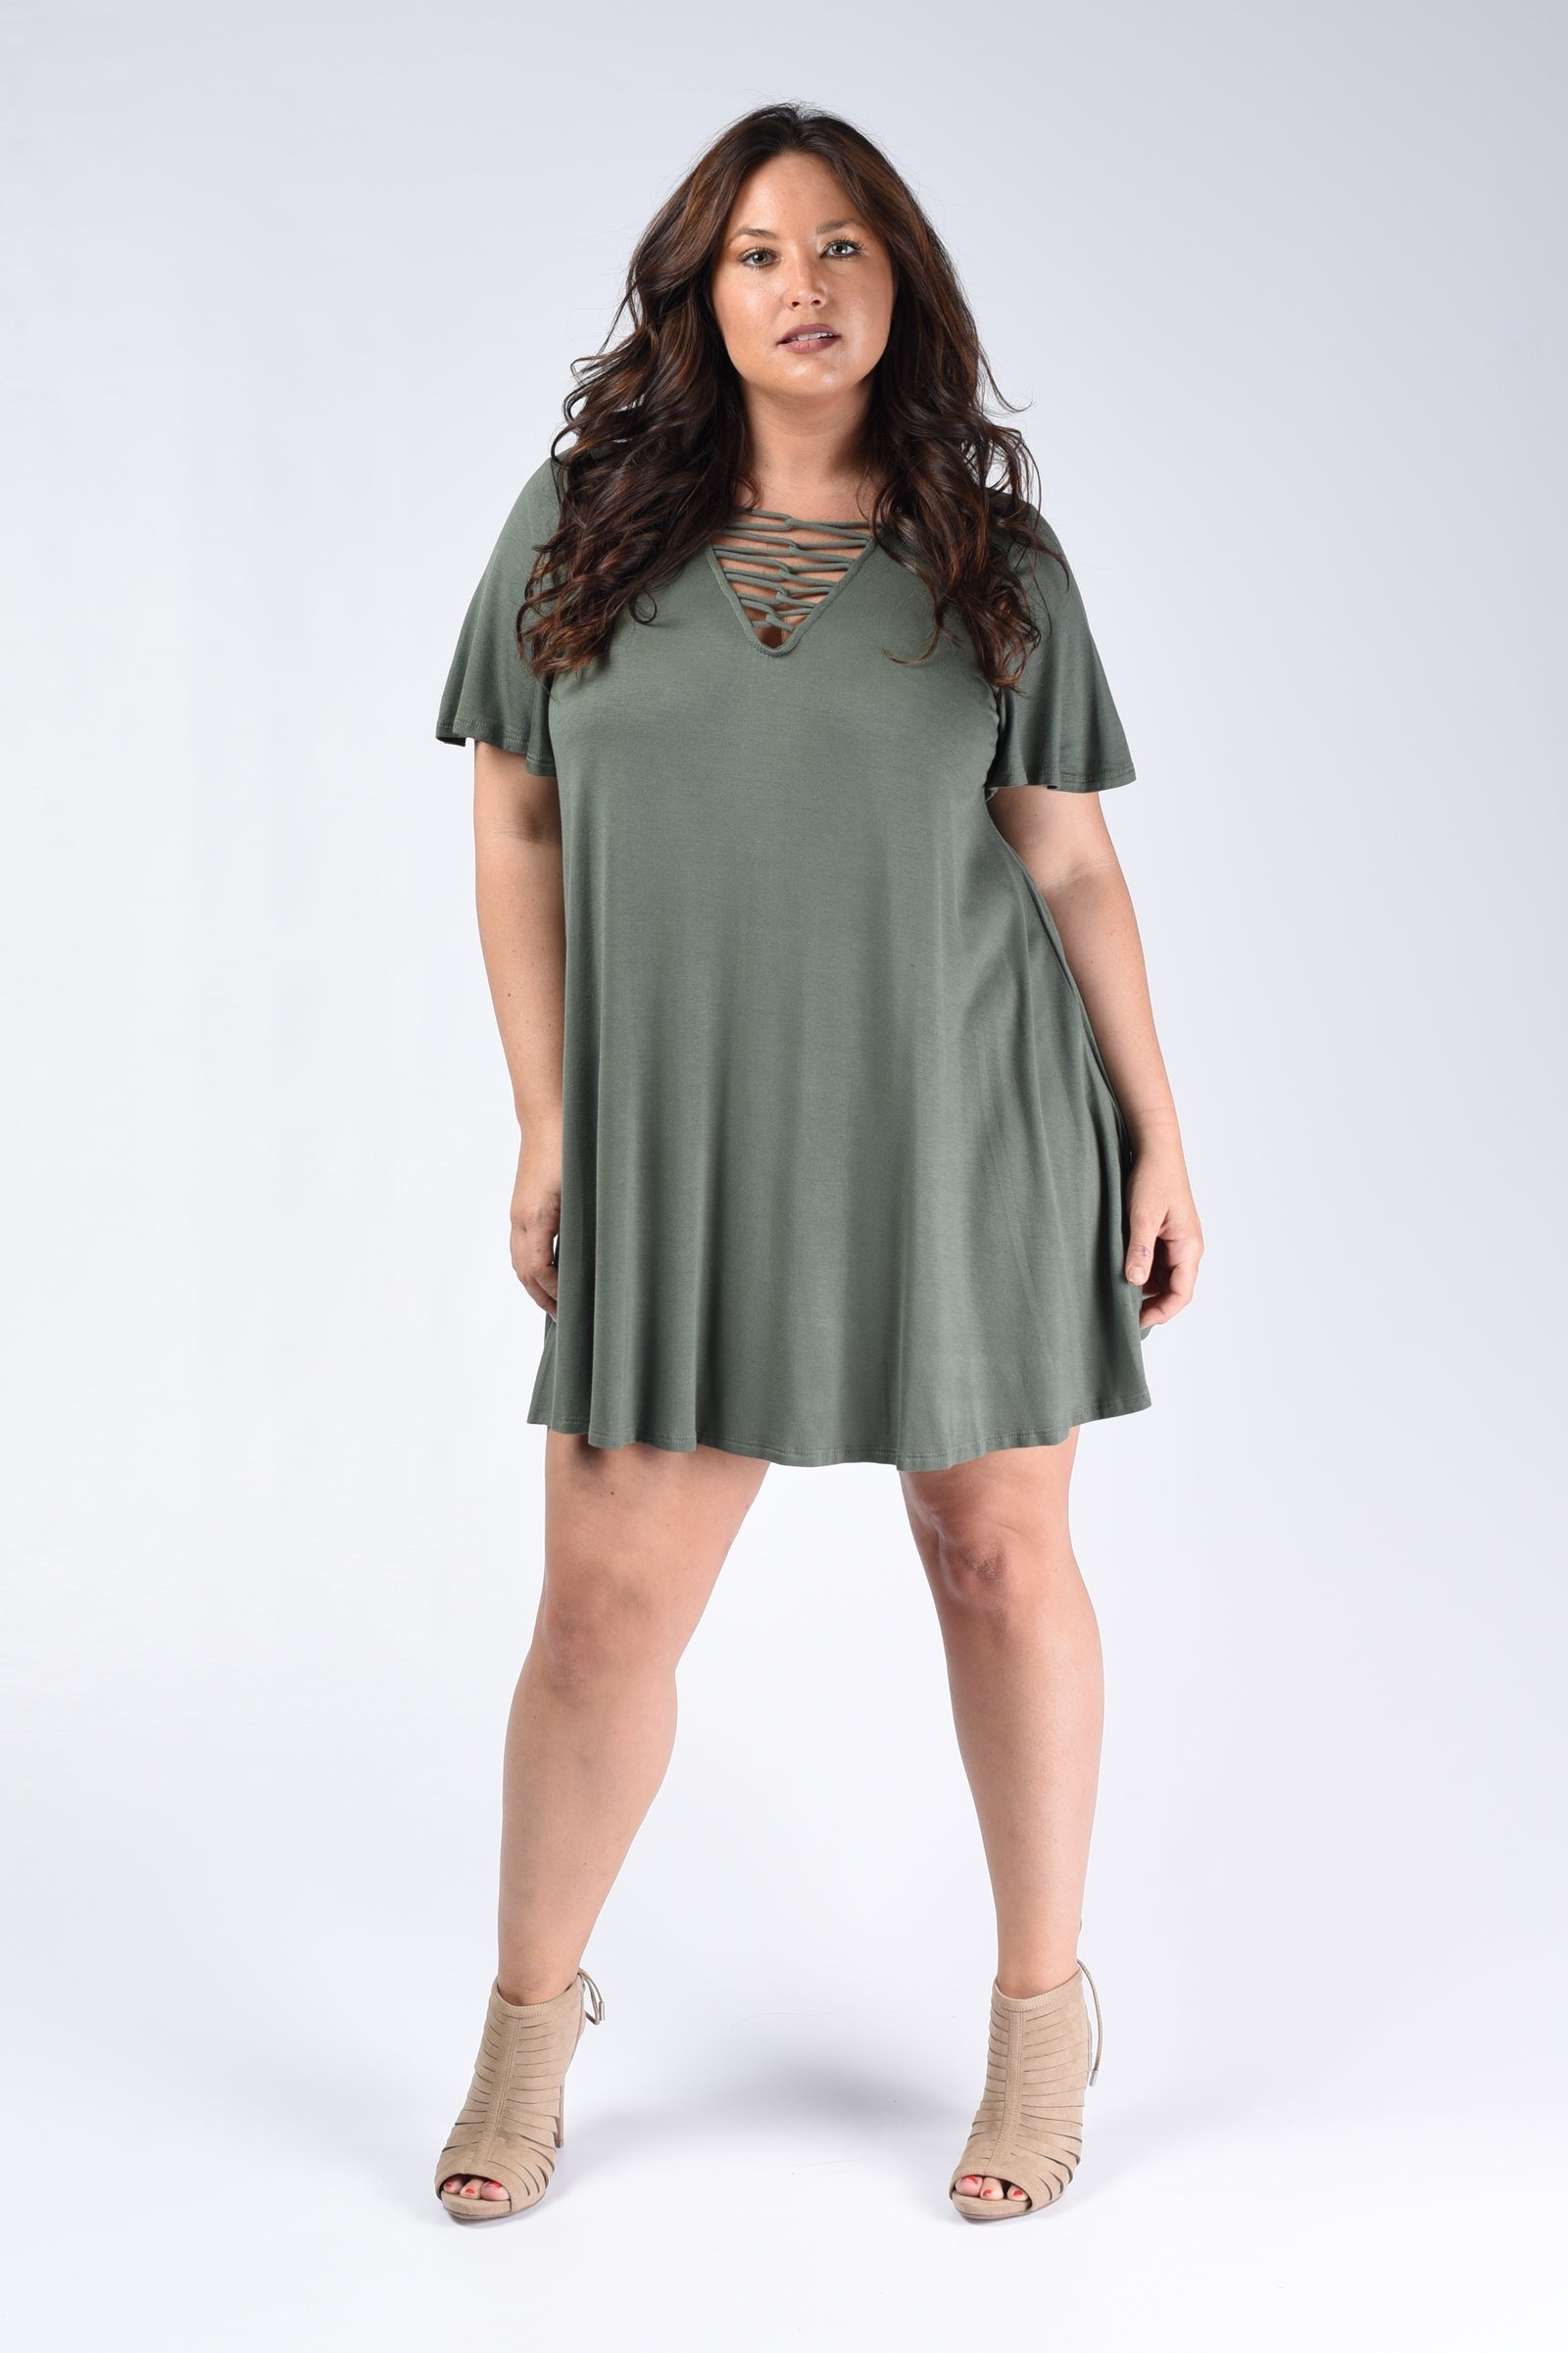 Olive Corset Tunic Top